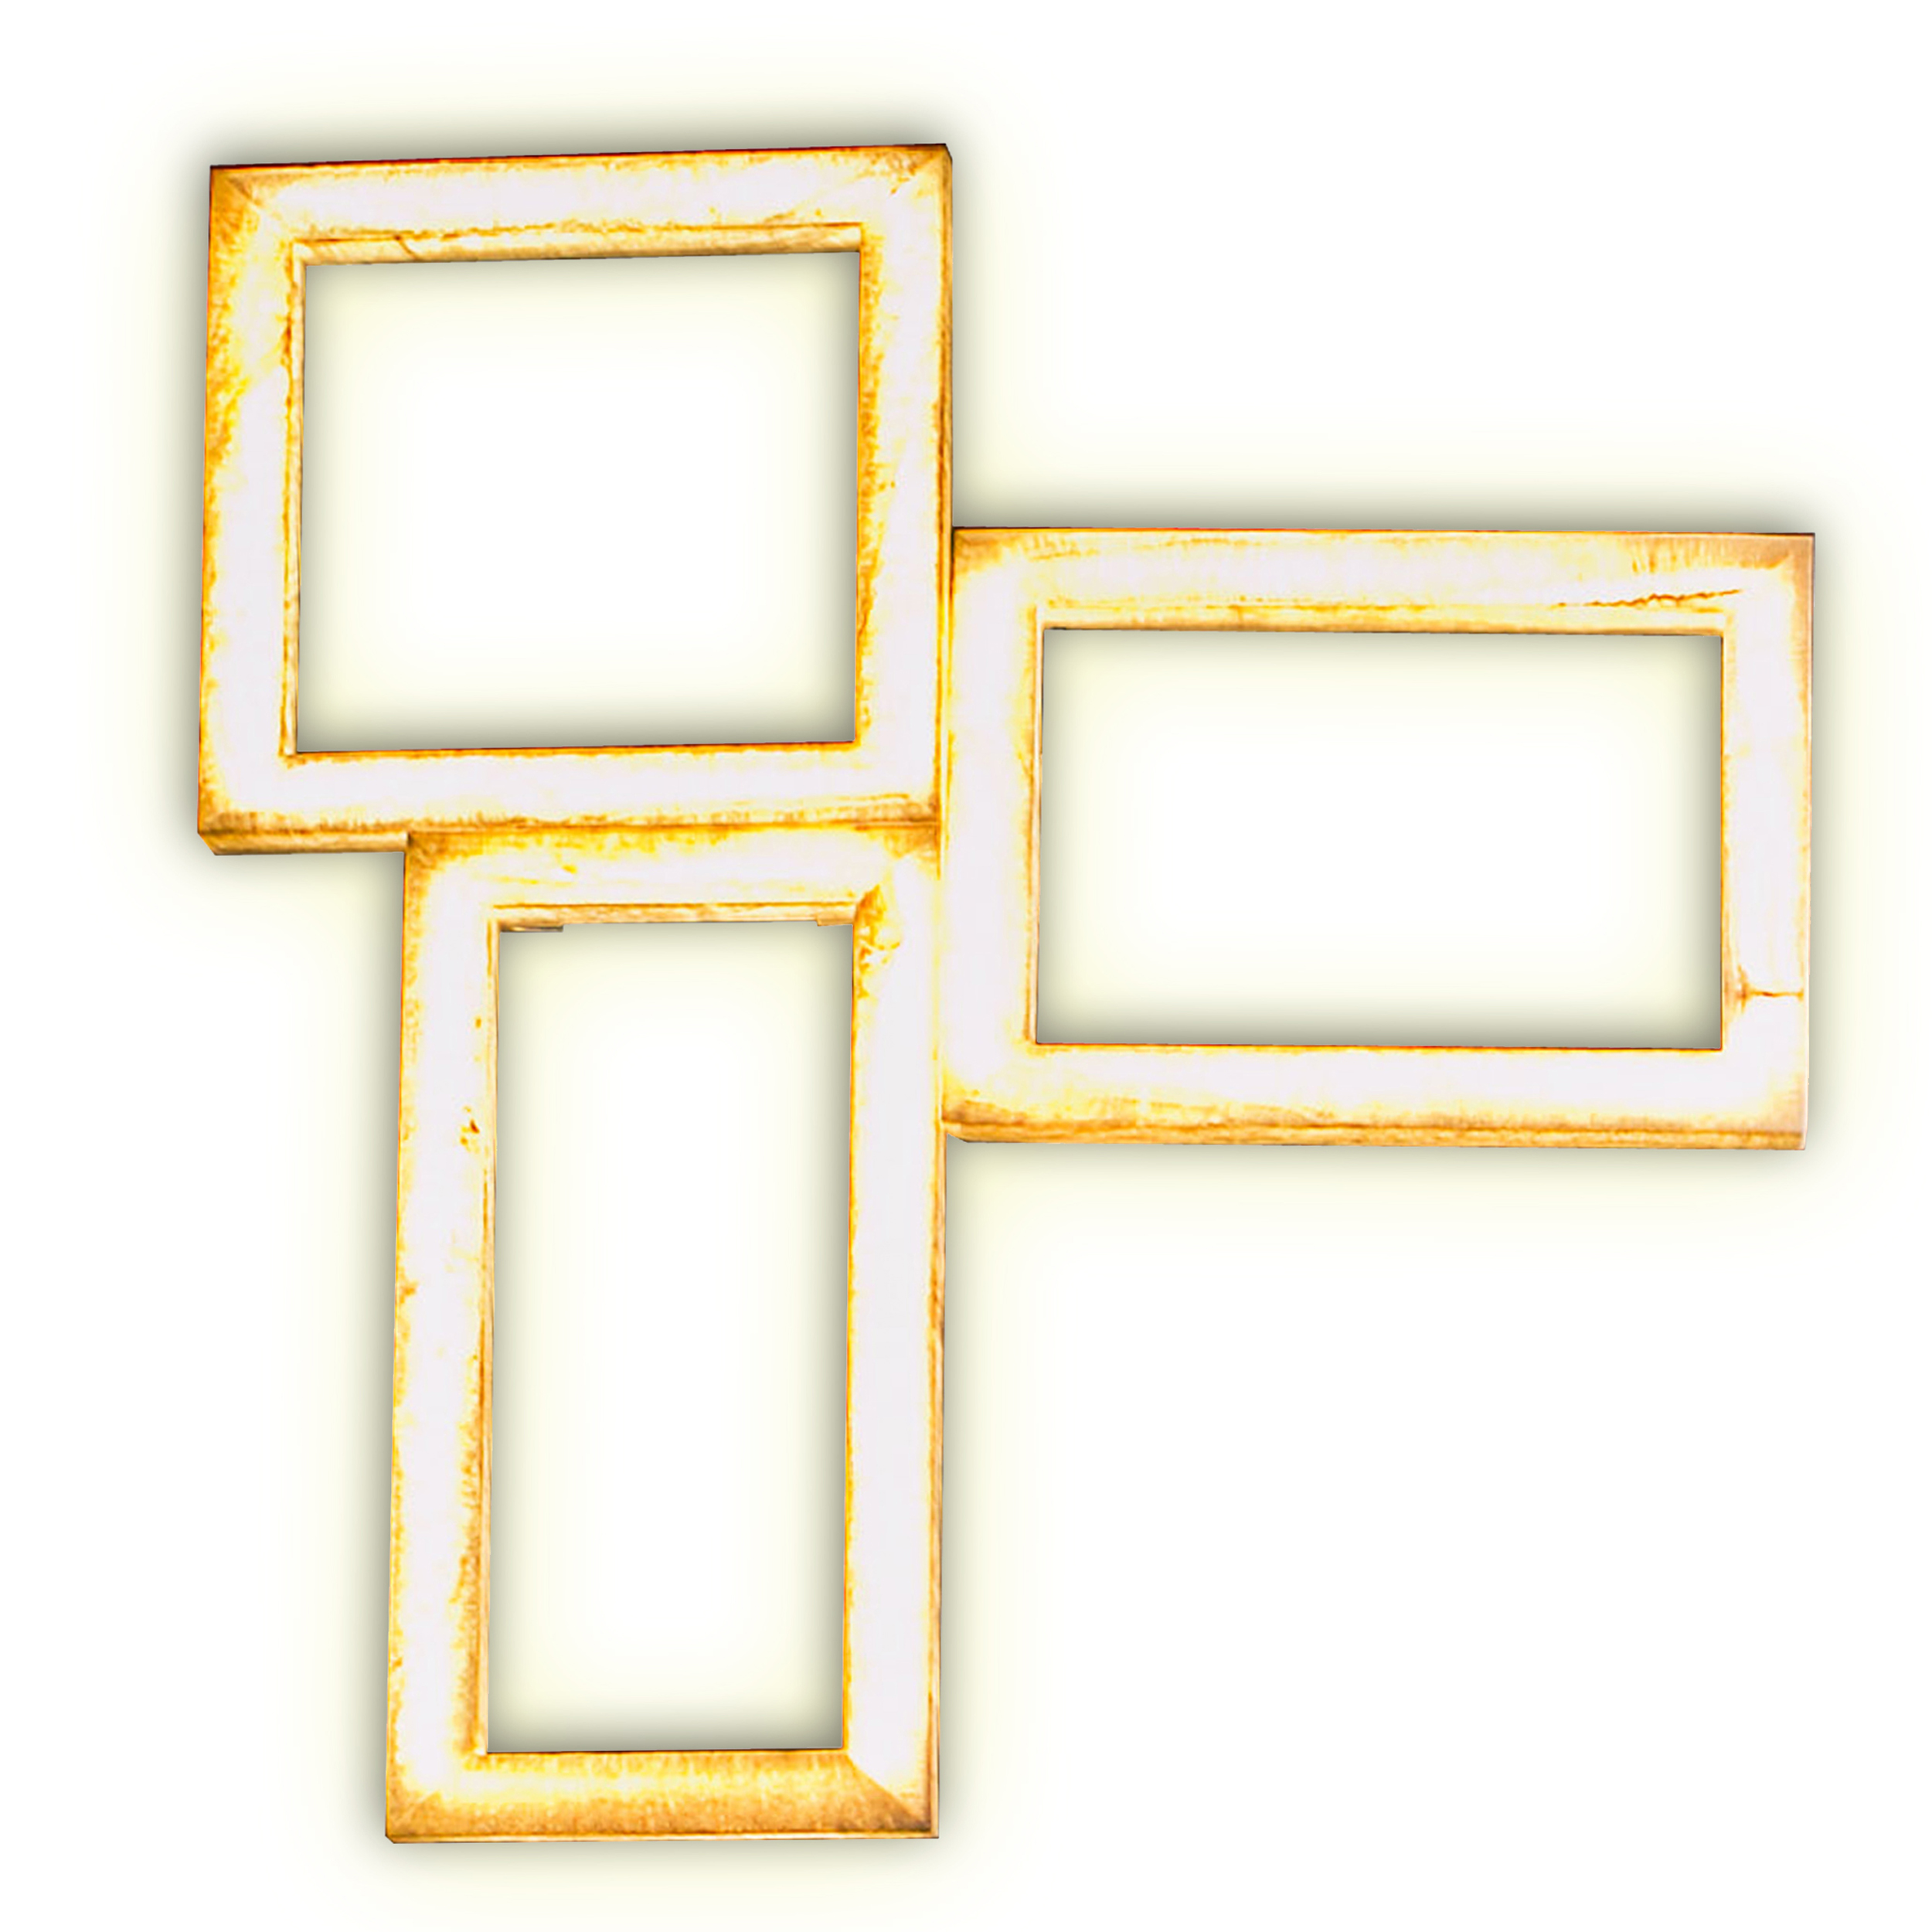 Contardi Uffizi Ap Trio Wall Light Marble B